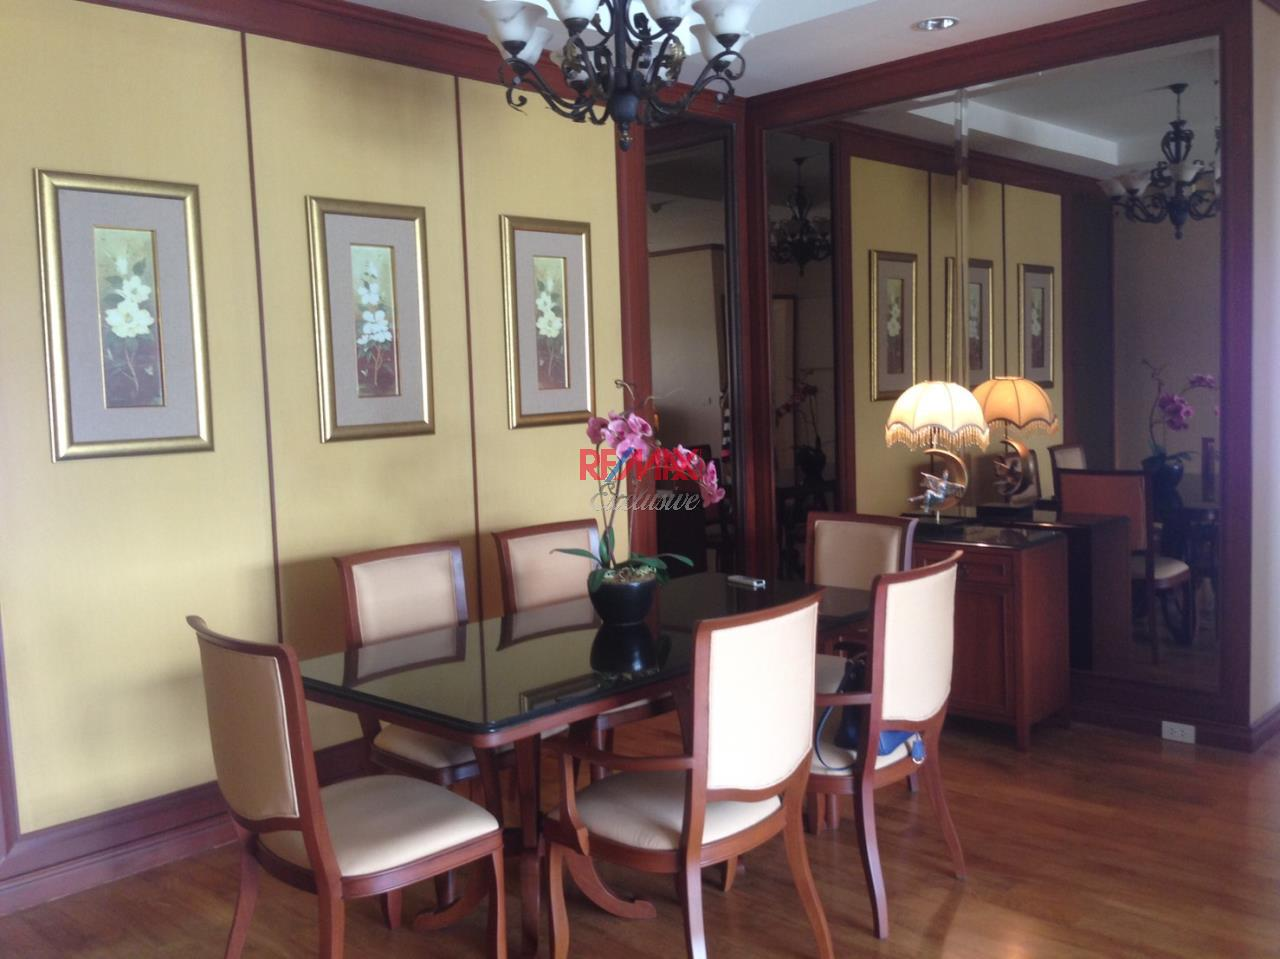 RE/MAX Exclusive Agency's The Bangkok, Sukhumvit 43, 2 Bedroom, 115 Sqm. Fully-Furnished - Ready to move in !!! 4